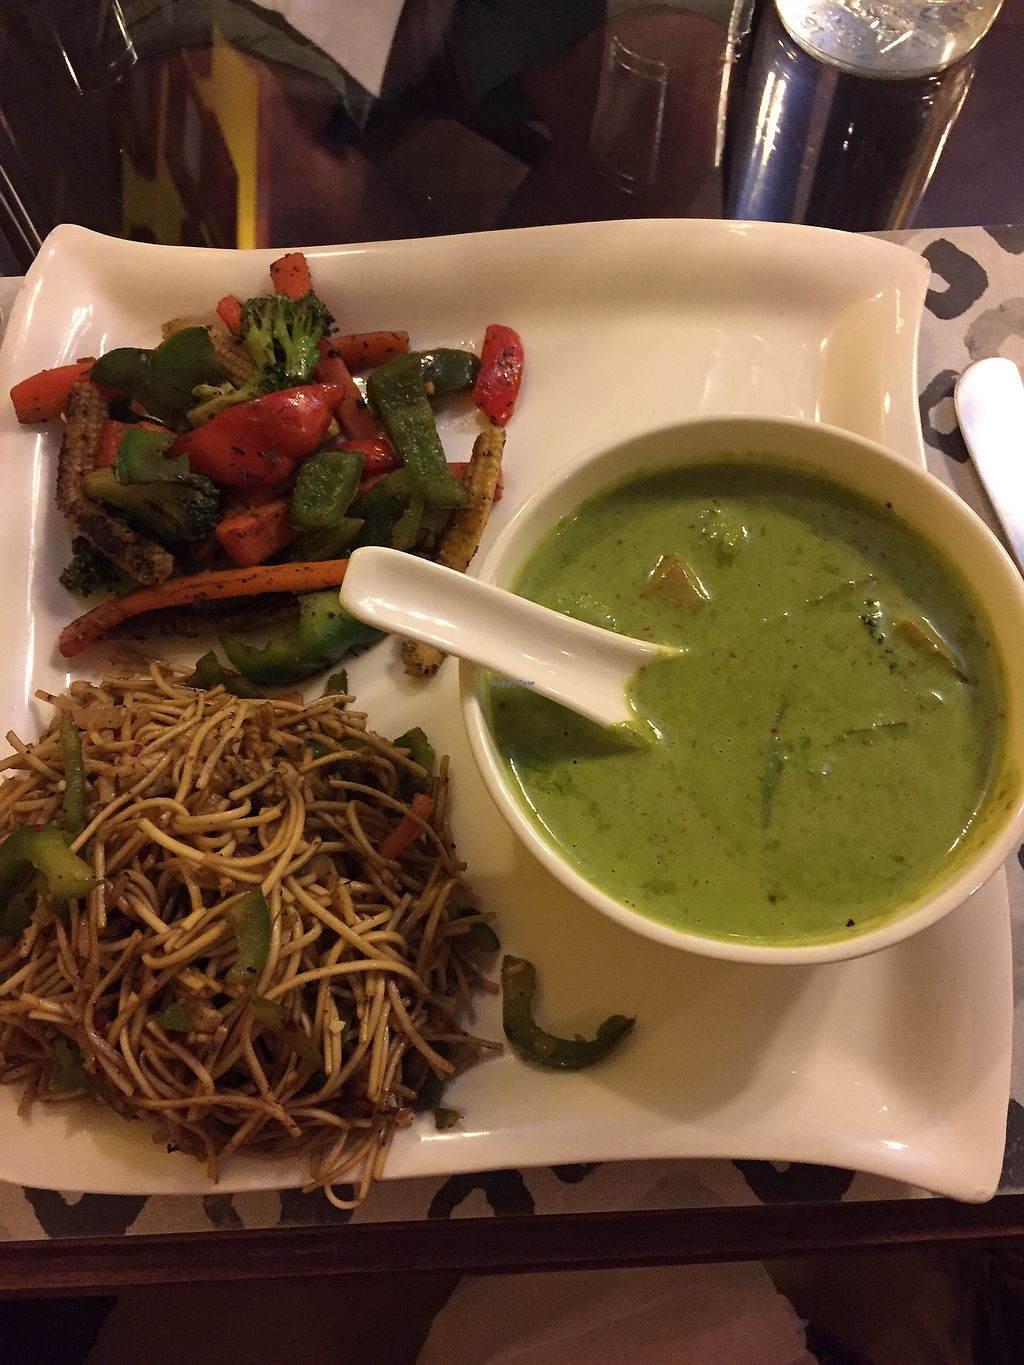 "Photo of Ashvita Nirvana  by <a href=""/members/profile/ChristianeR"">ChristianeR</a> <br/>Roasted vegetable Salad / green Thai curry with Thai fried vegetable noodles <br/> November 25, 2017  - <a href='/contact/abuse/image/92013/329022'>Report</a>"